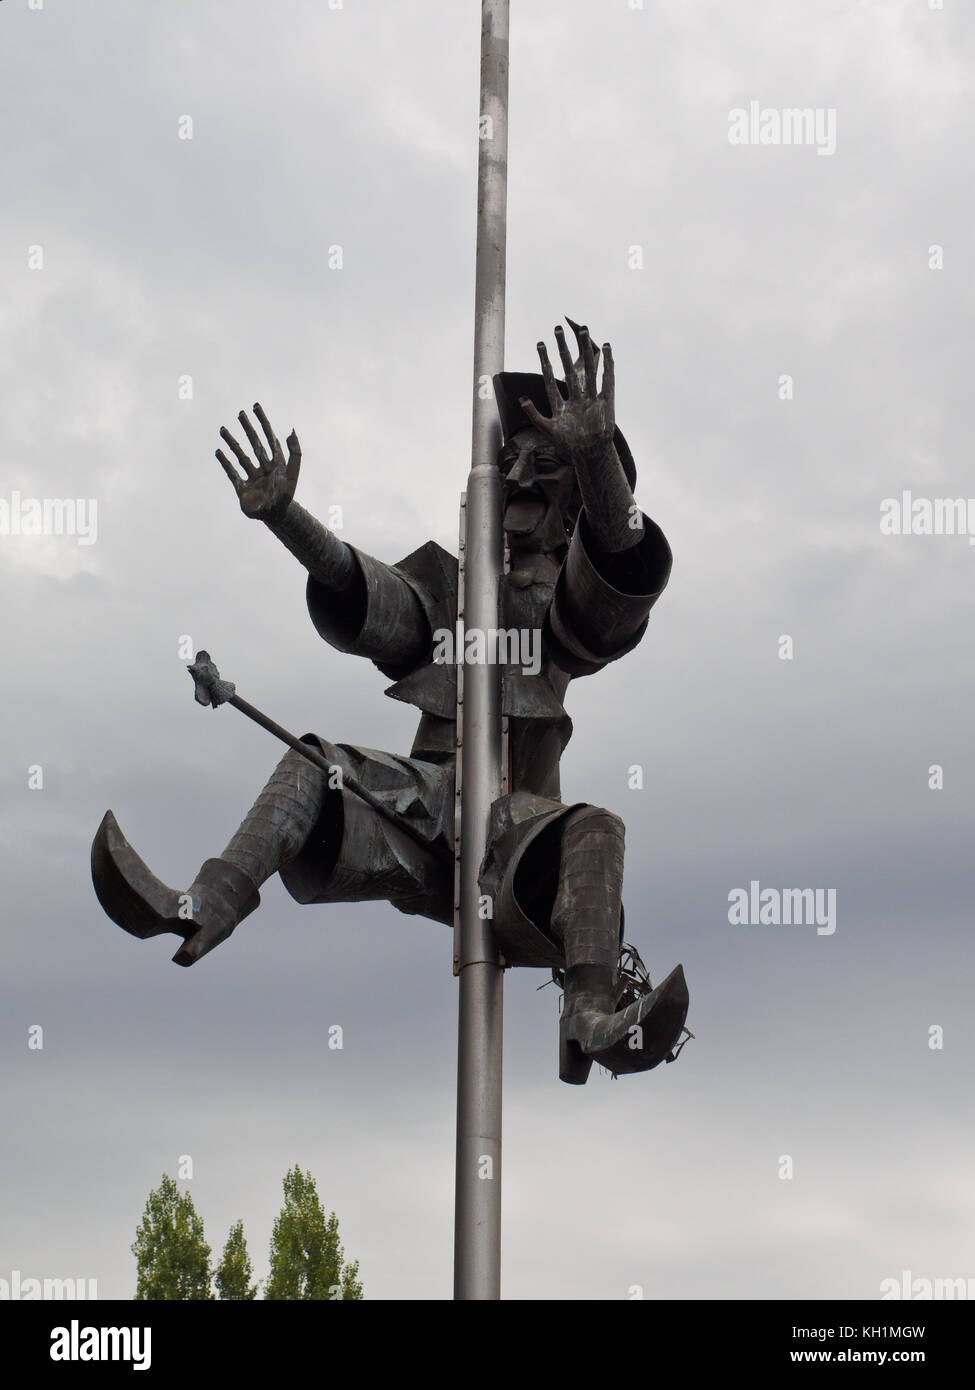 Baba Yaga Sculpture in the town of Haskovo. - Stock Image